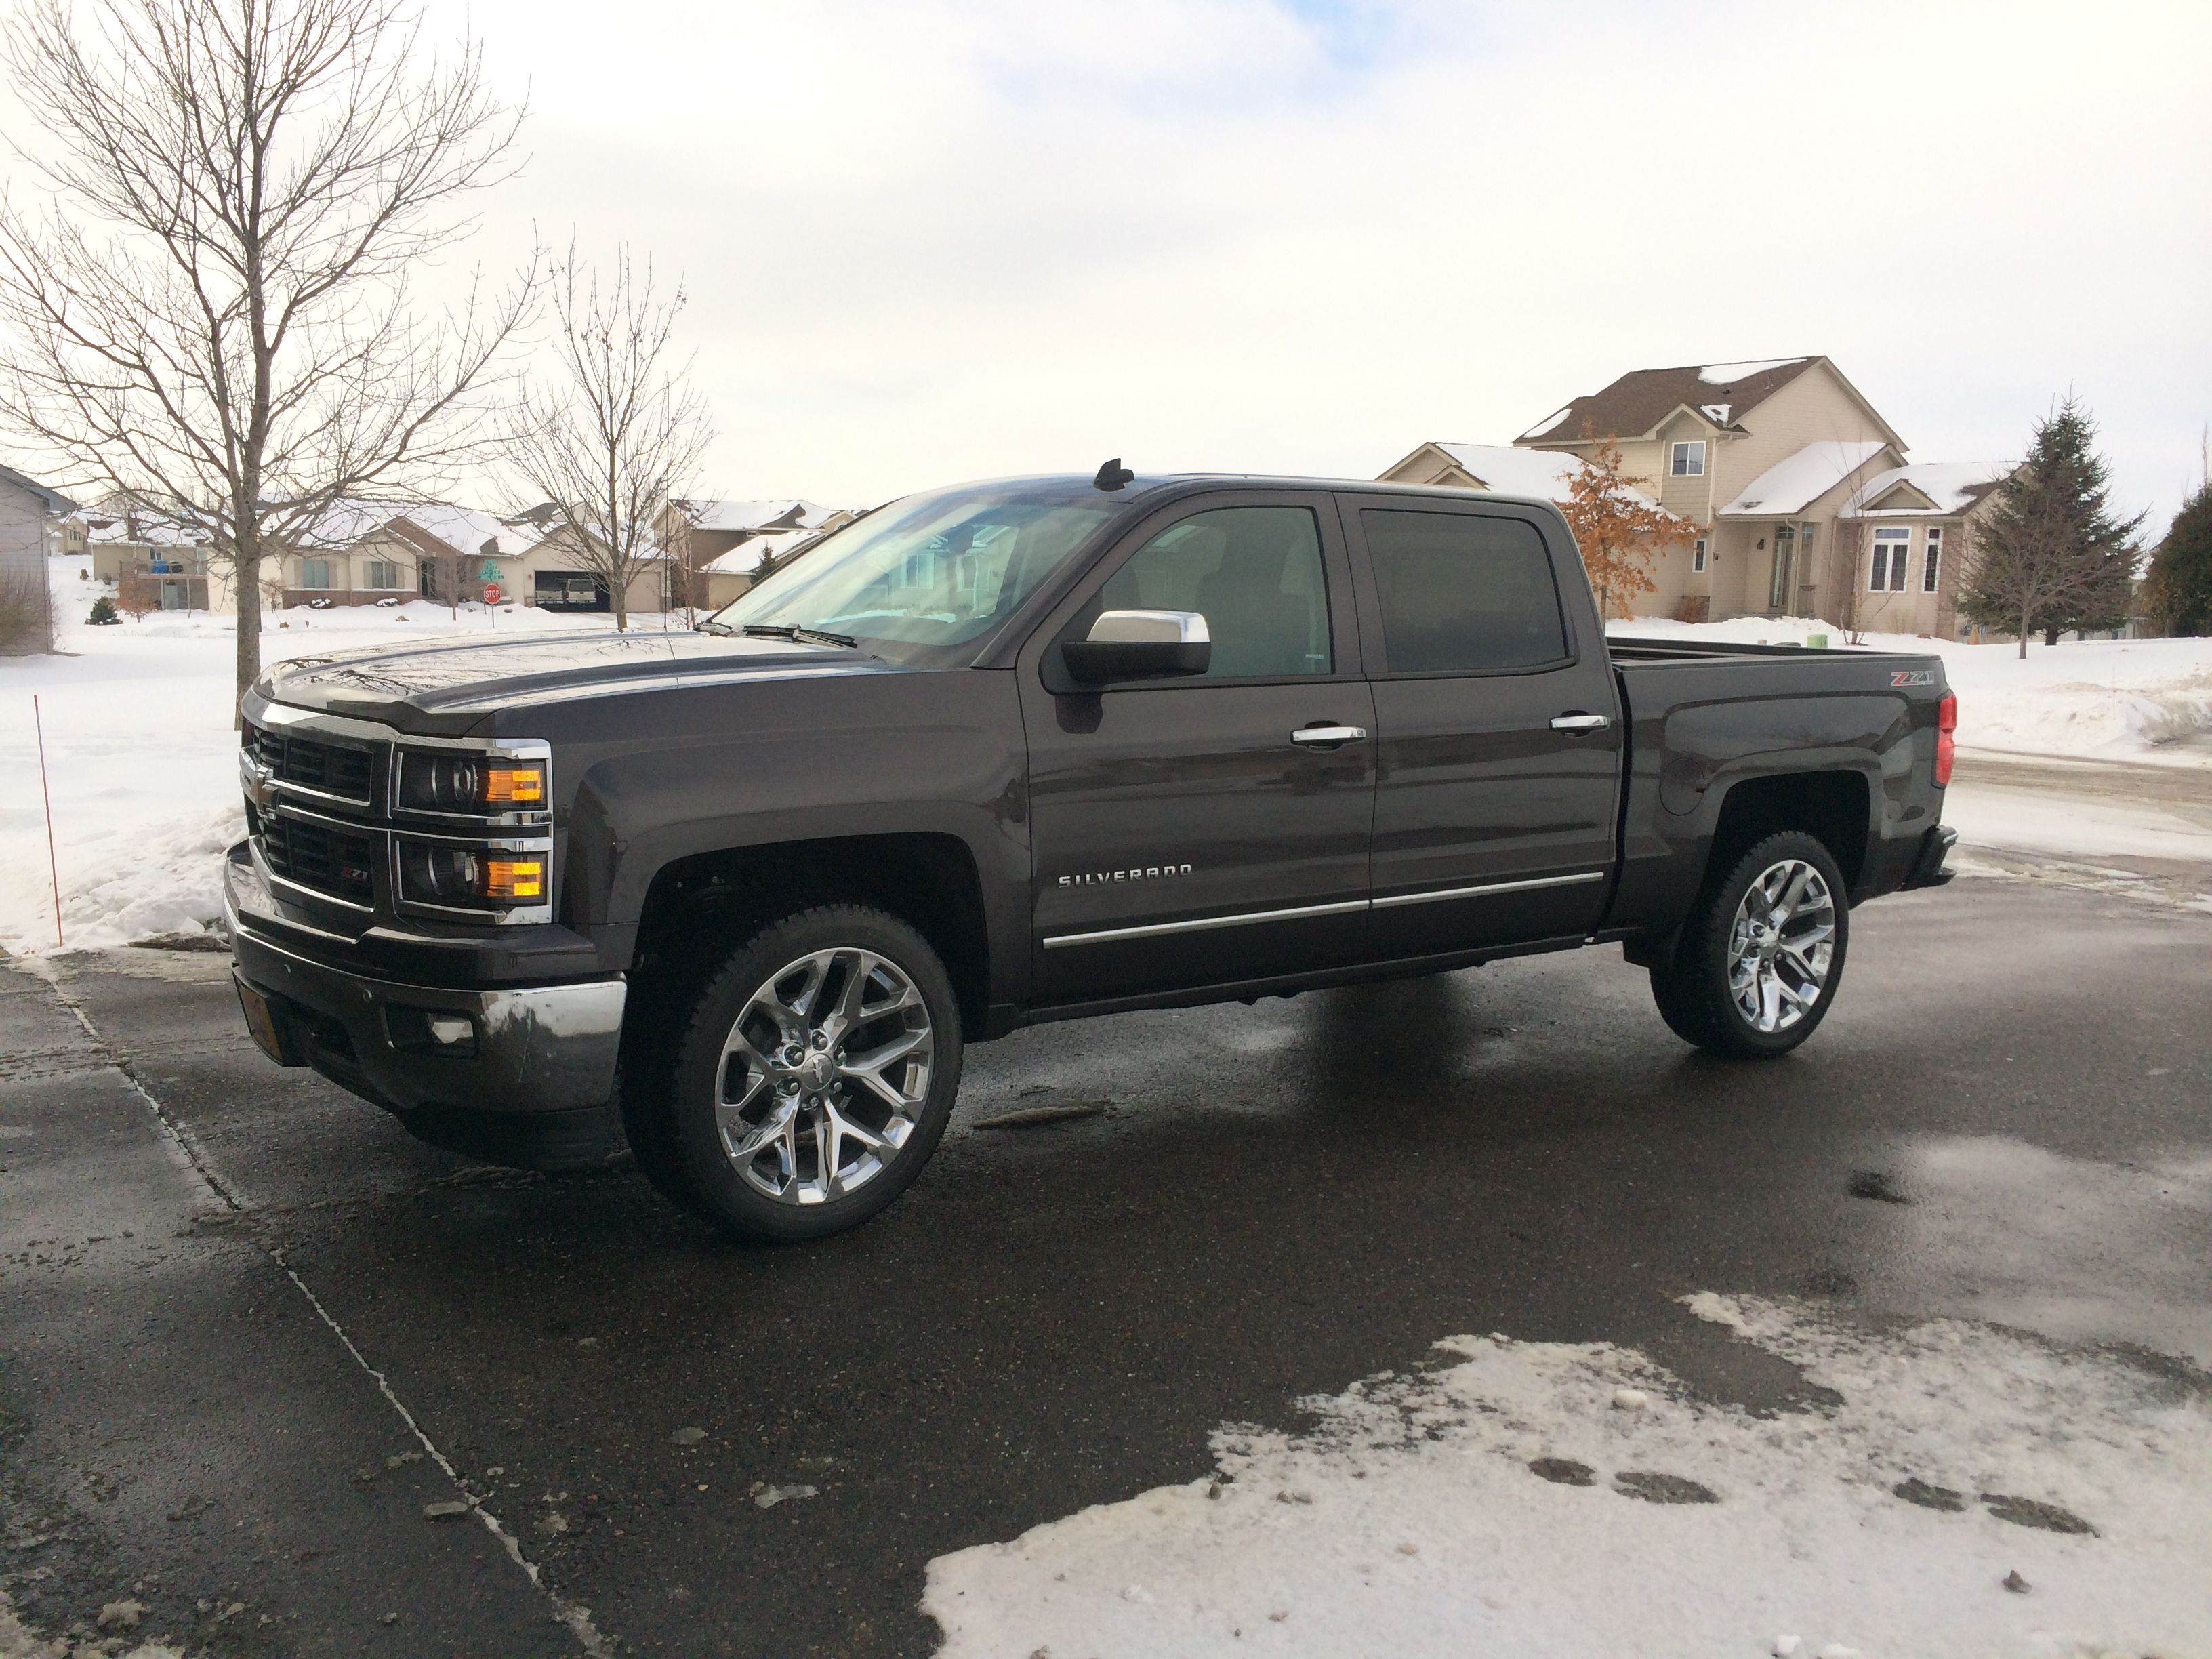 2014 Silverado Ltz Z71 With 22 Rims New Pickup Trucks Chevy